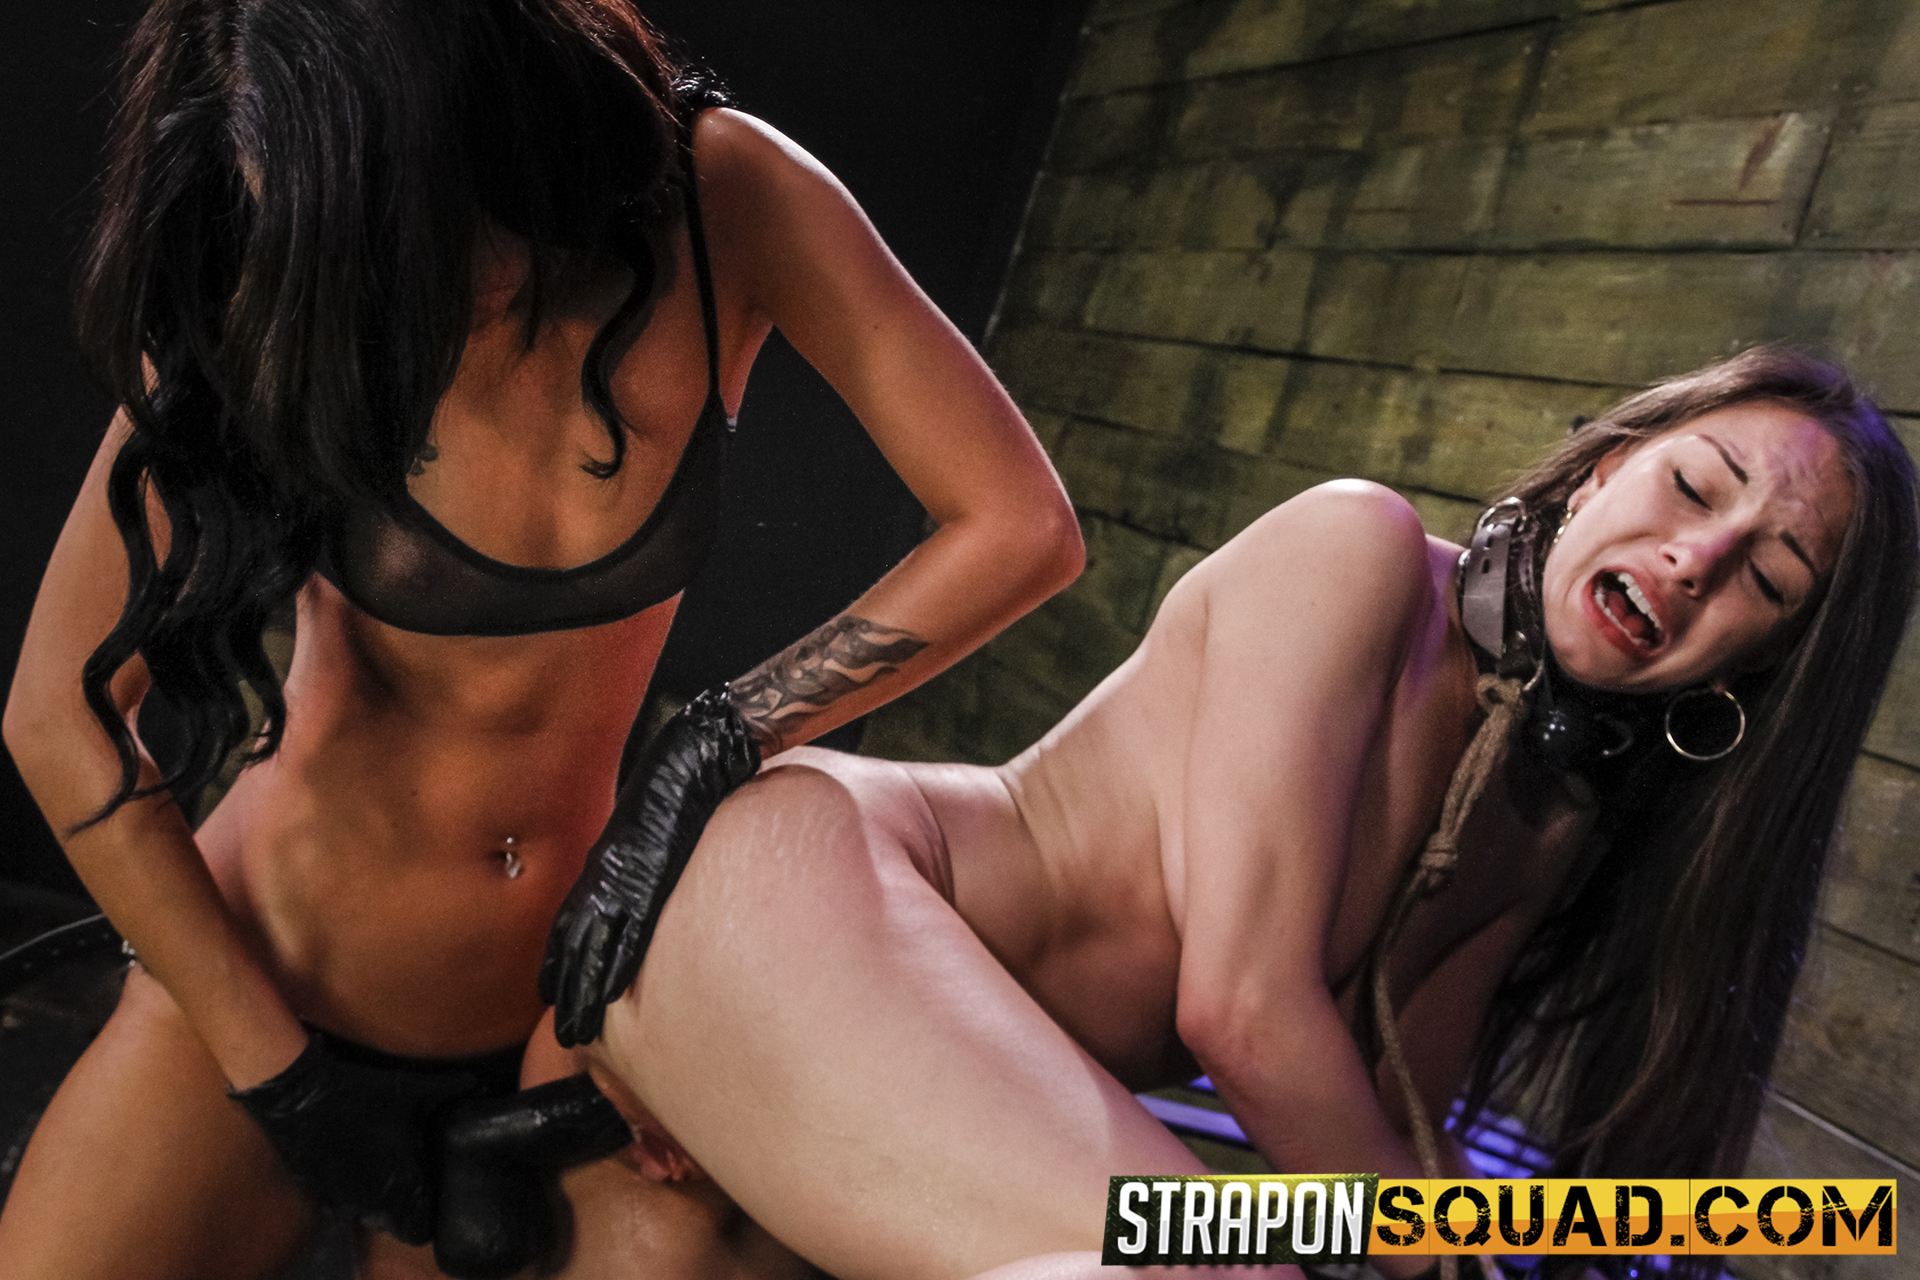 Lesbian domination and bondage with alexis rodriguez and esmi lee. Femdom Esmi Lee never leaves her large black strapon dildo at home for dungeon play. She's quite sweet at having hardcore BDSM fun with bondage, rough sex, spanking, slapping tits, biting nipples, smacking, flogging, deep penetration, constant orgasms and more sex toys. We're not sure if sex slave Alexis Rodriguez was ready for this shoot. We've never heard anyone scream and whine like her. Thank sweetness for ball gags!